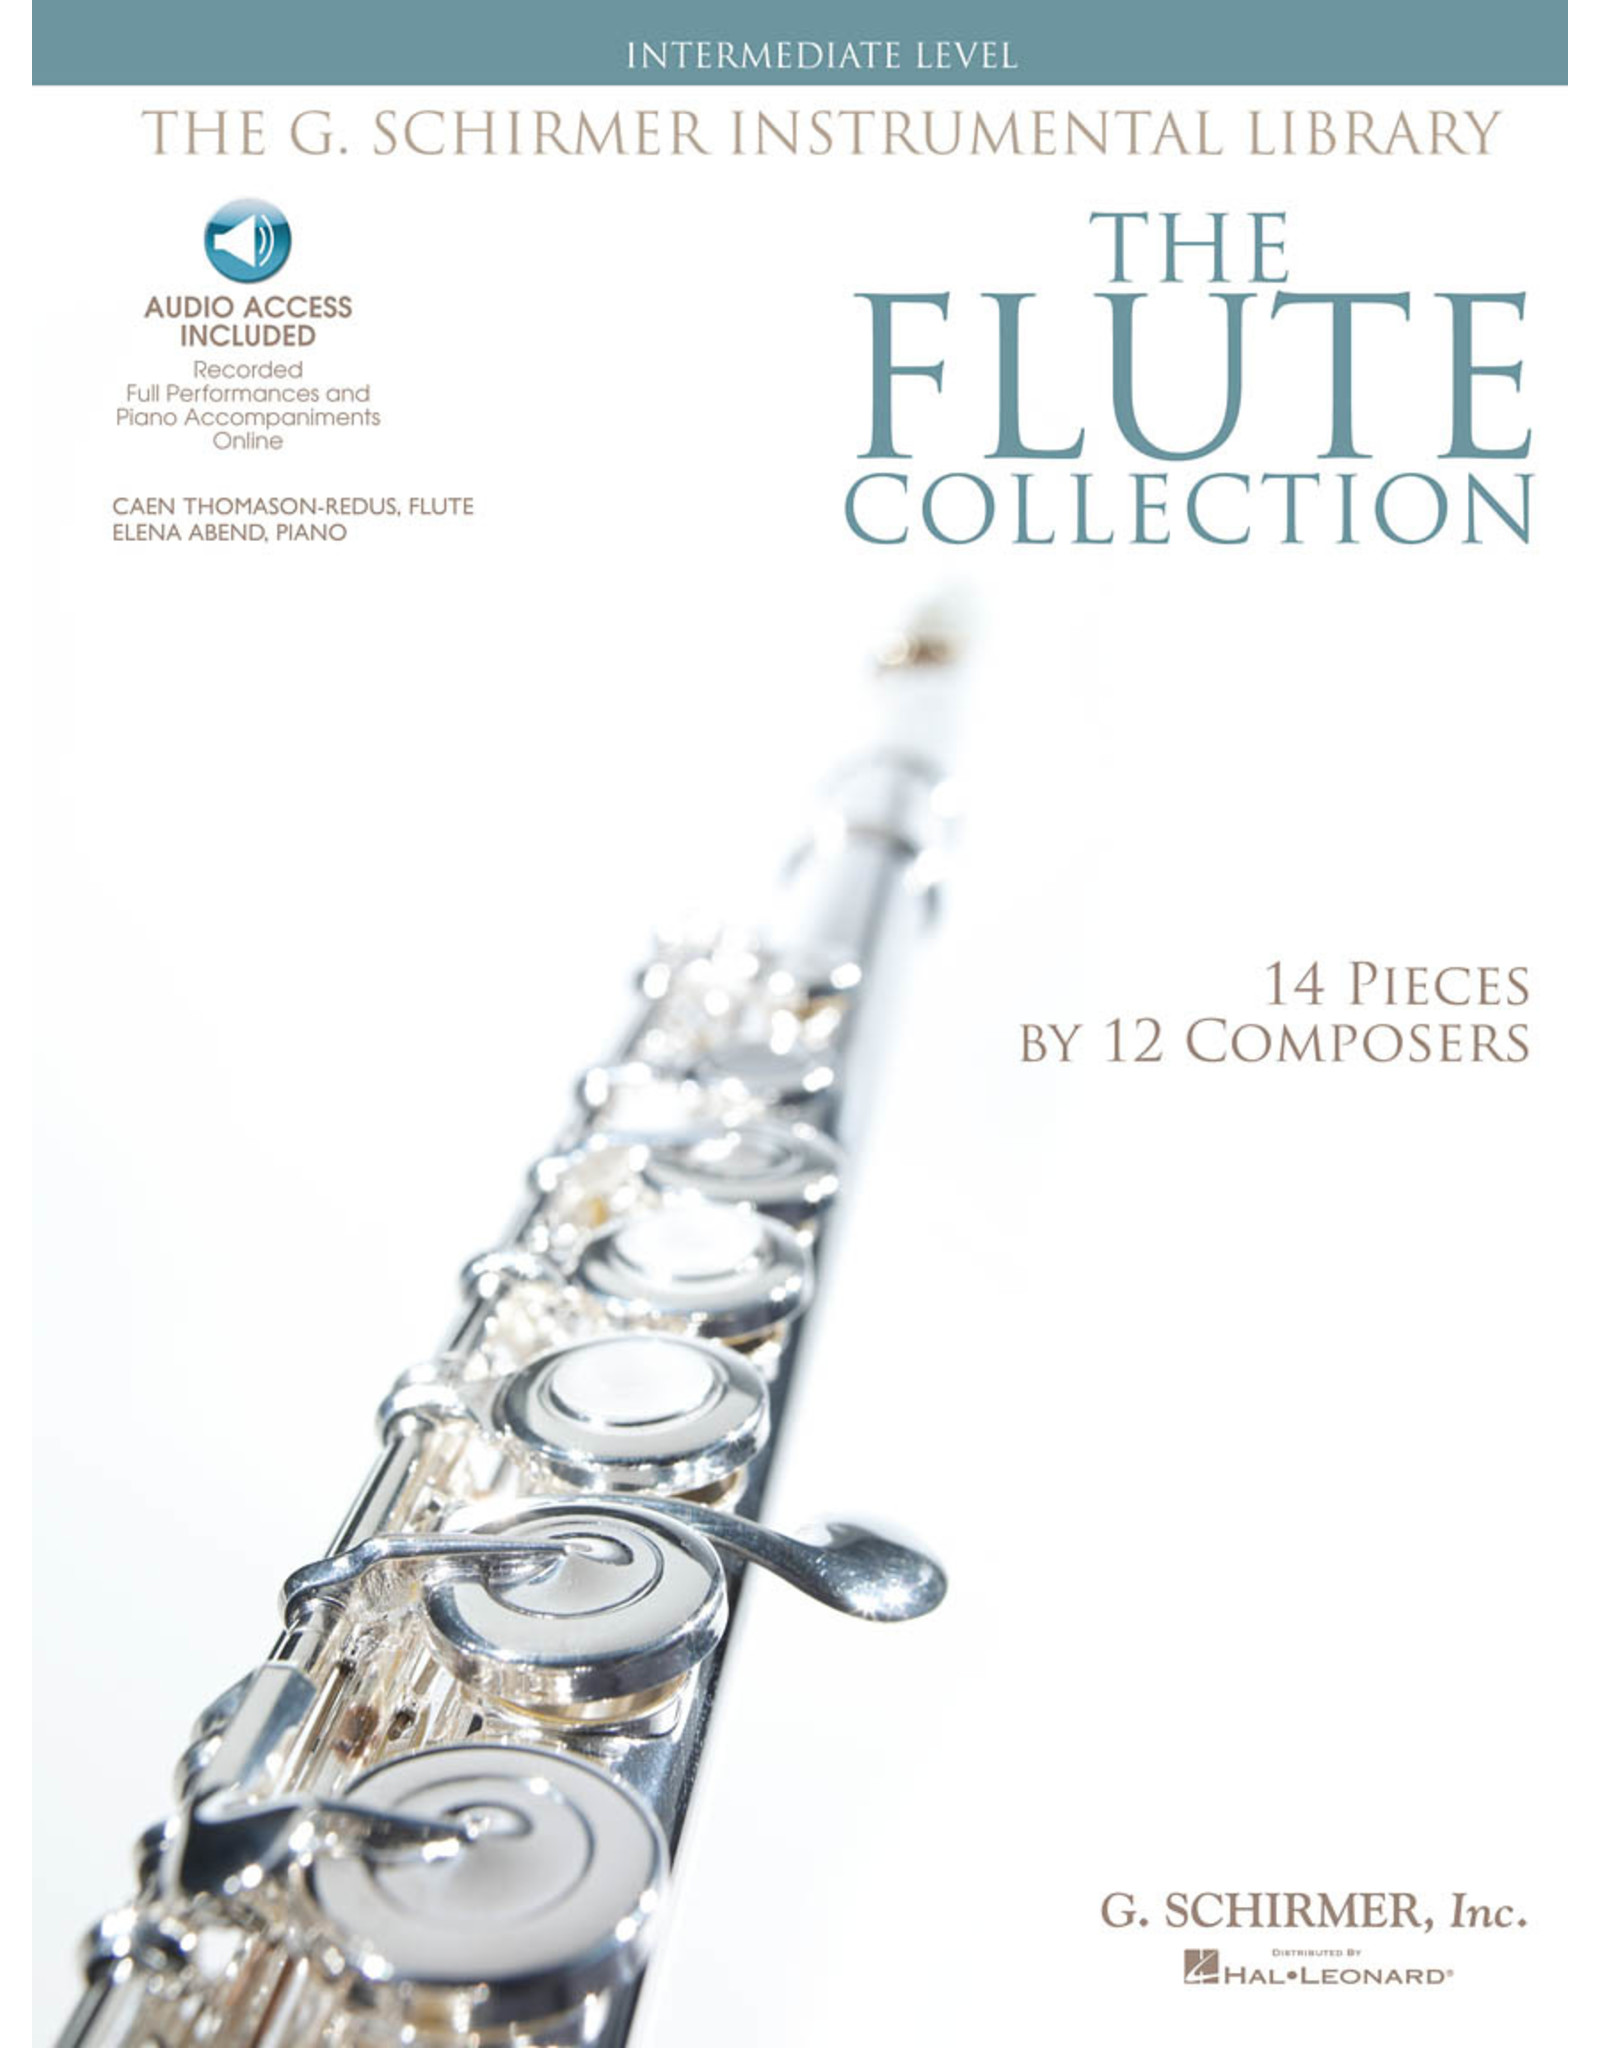 Hal Leonard The Flute Collection - Intermediate Level Schirmer Instrumental Library for Flute & Piano Woodwind Solo